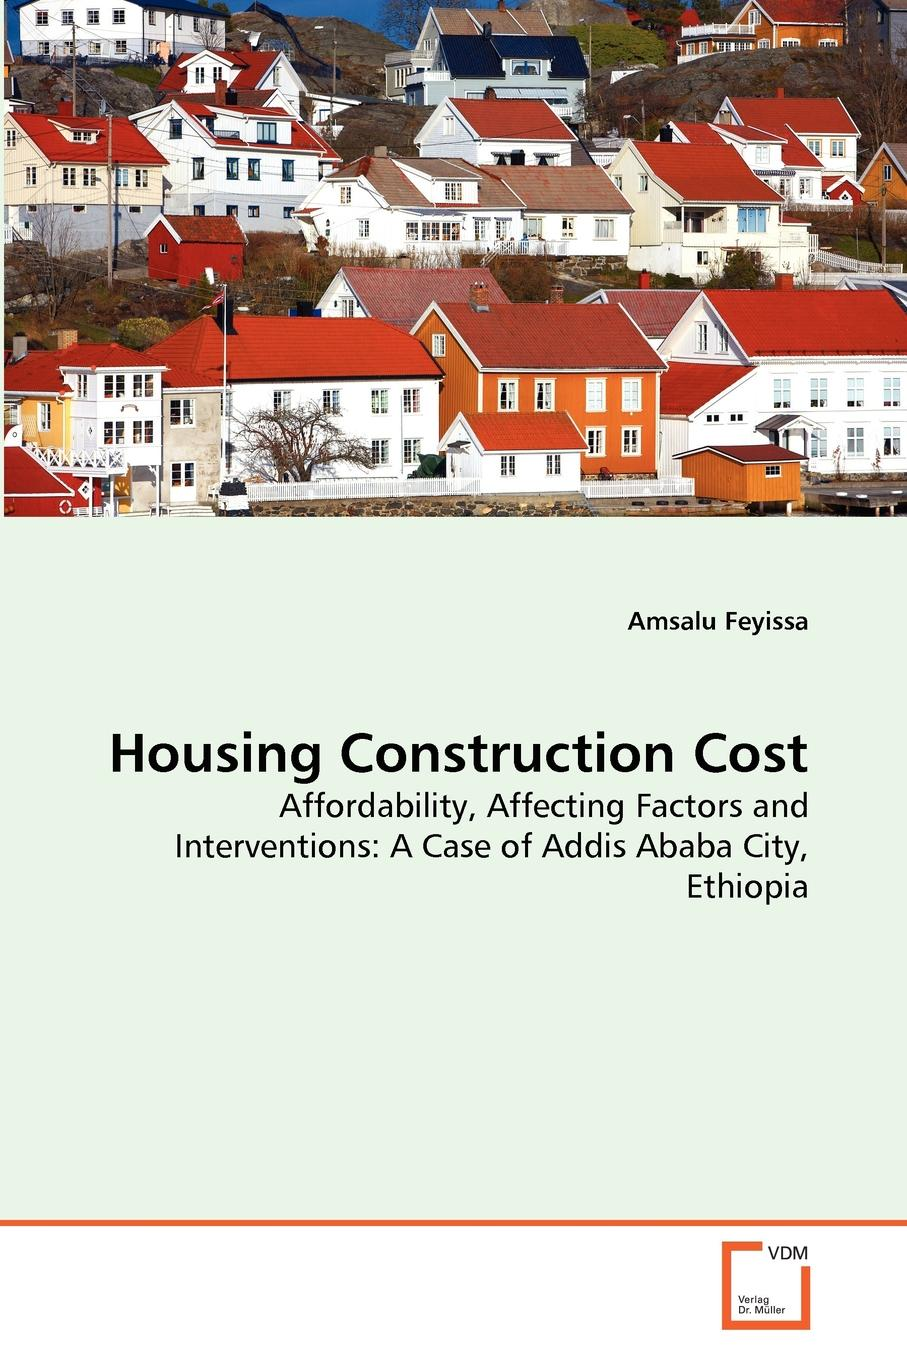 Amsalu Feyissa Housing Construction Cost the cost of contracting out